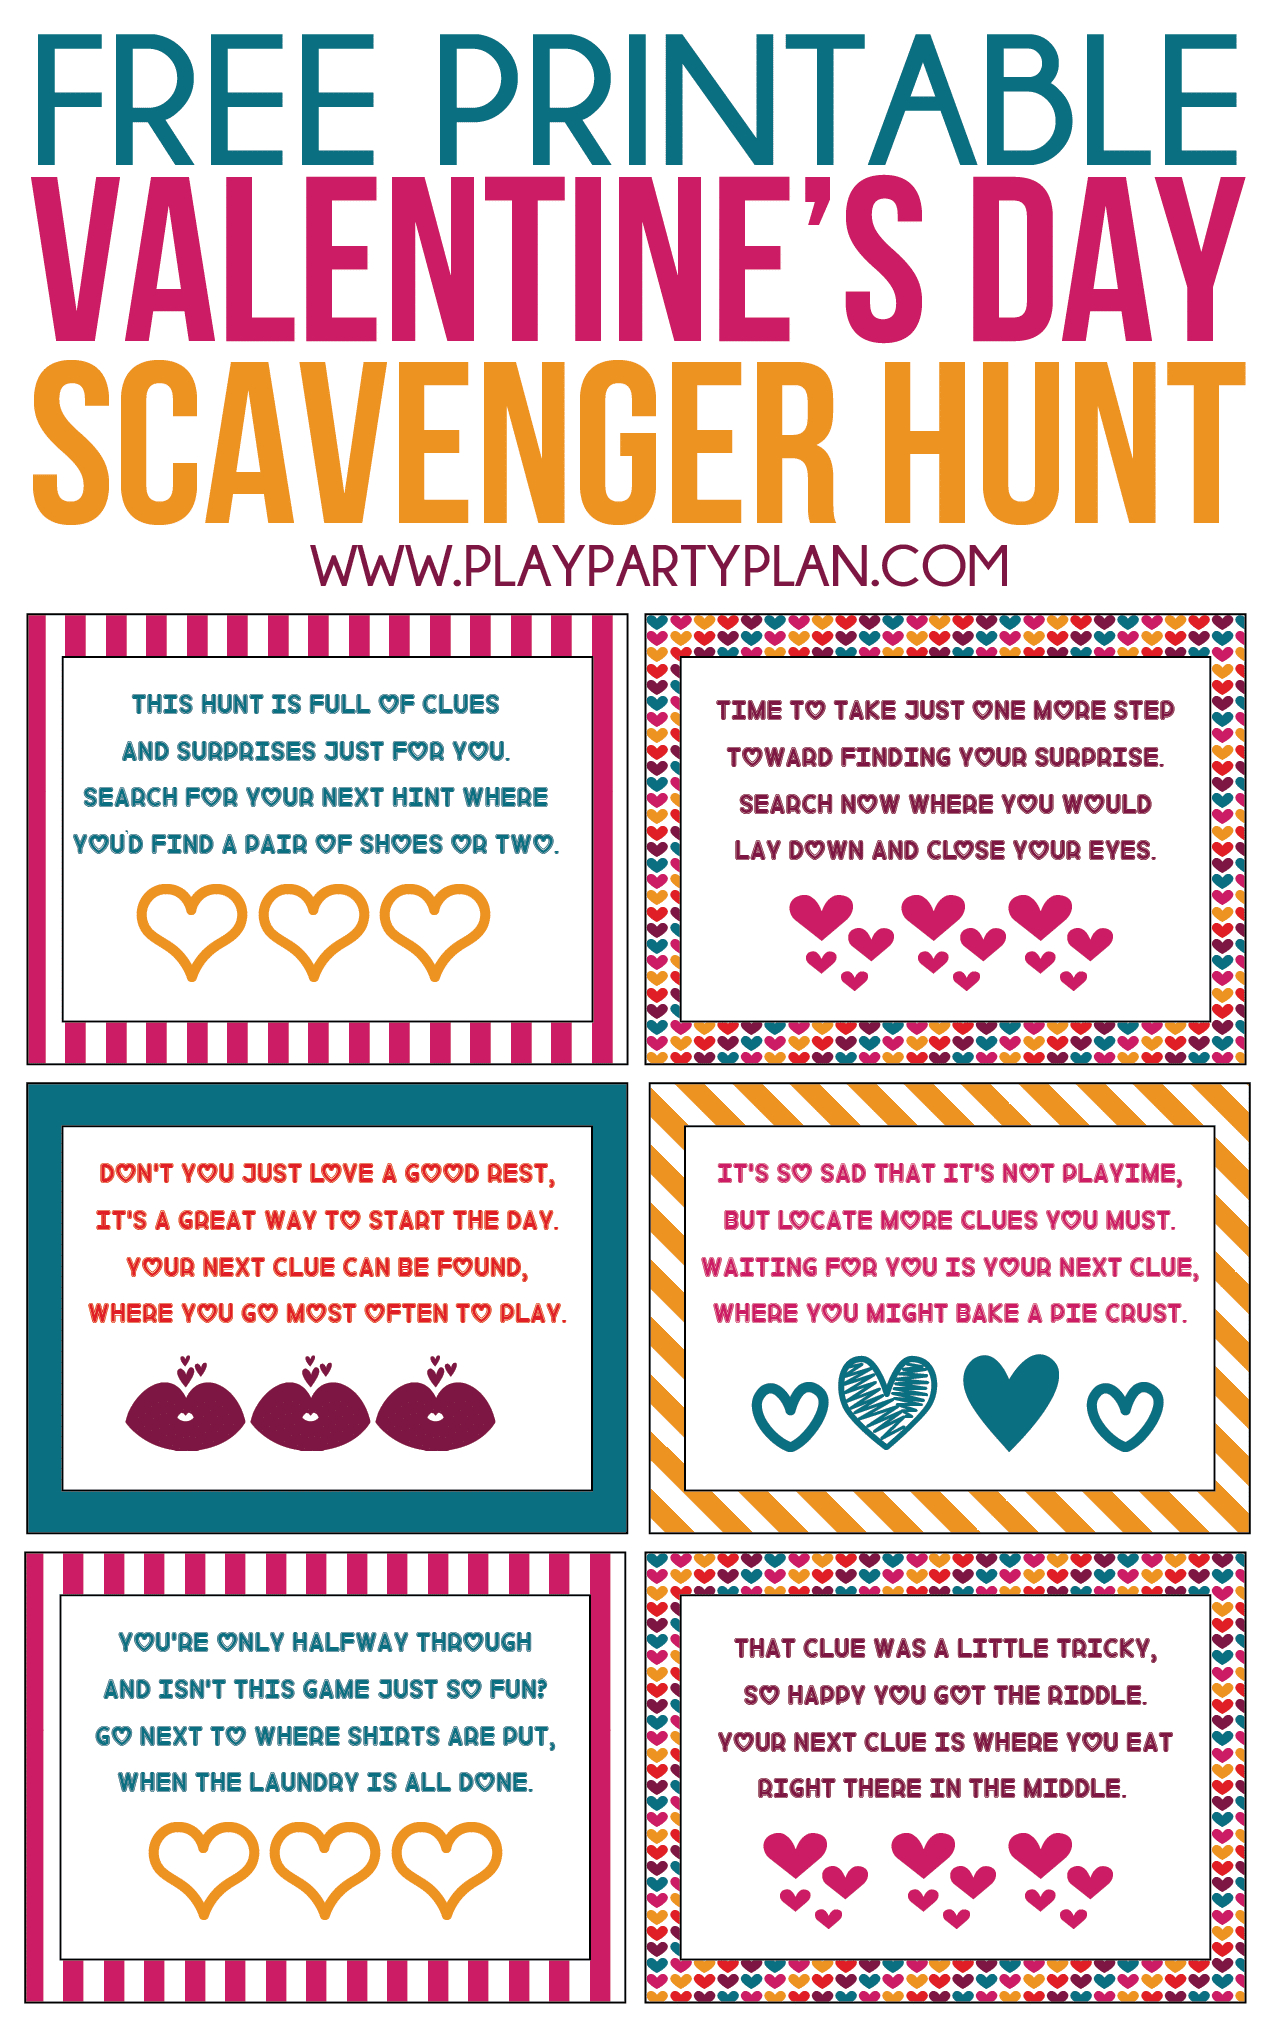 Free Printable Valentine's Day Scavenger Hunt Kids & Adults Will Love - Free Printable Scavenger Hunt For Kids